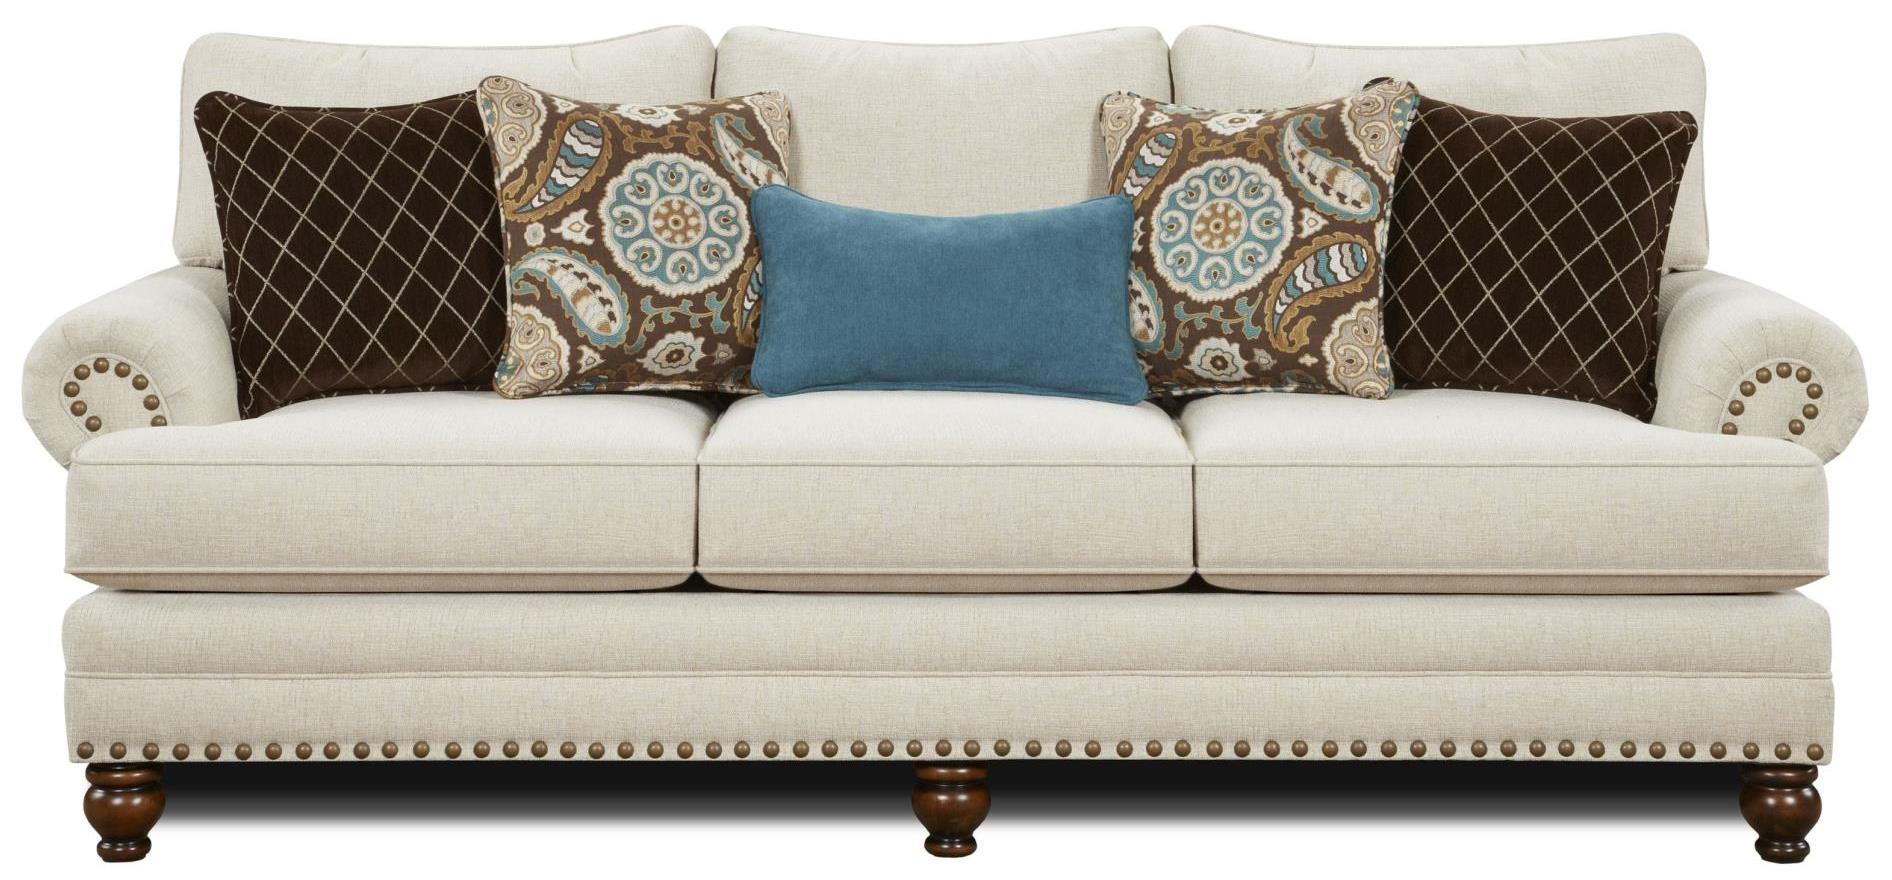 Haley Jordan Seabury Sofa - Item Number: 2820-KPAnna White Linen